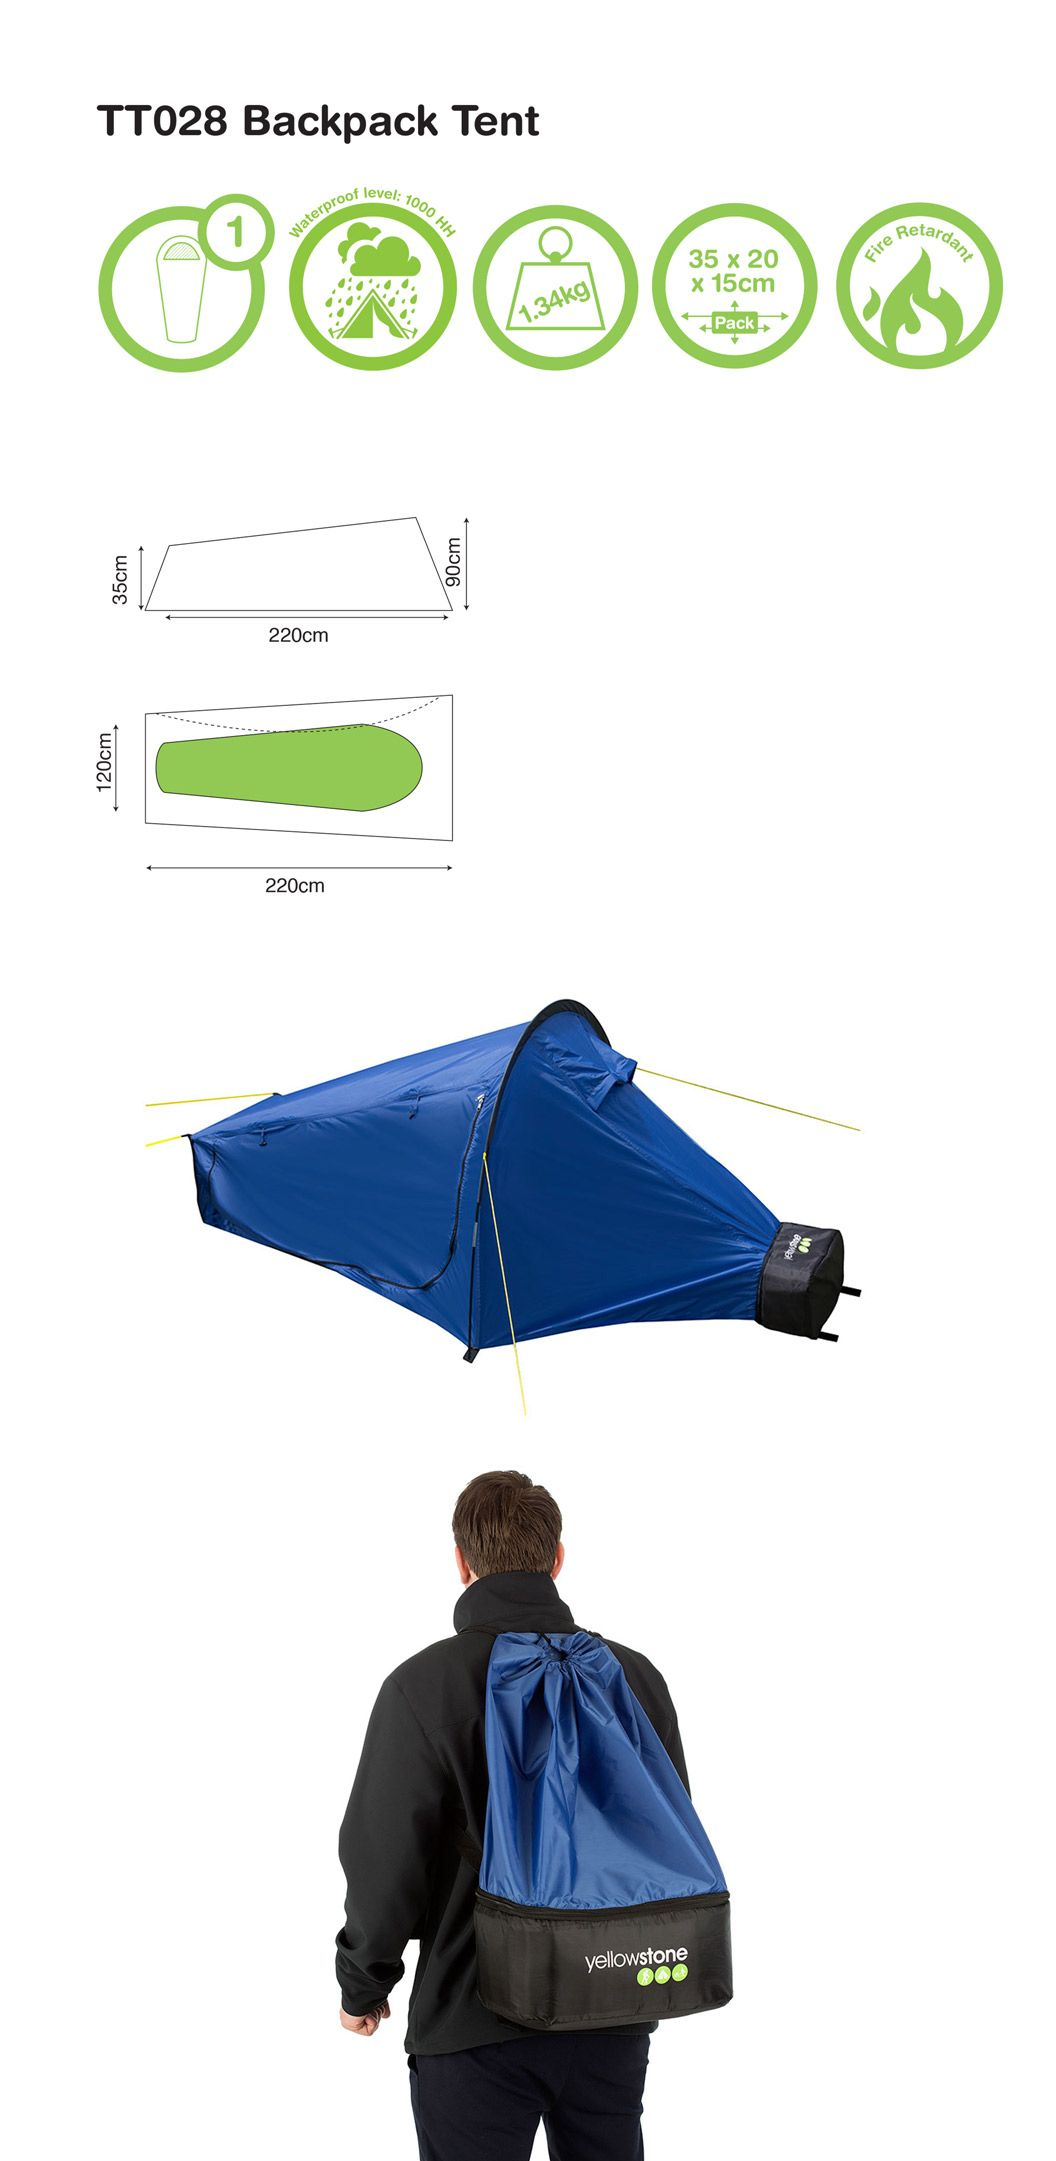 Yellowstone Backpack Tent. Ideal for hiking and backpacking converts from backpack to tent.  sc 1 st  Pinterest & Yellowstone Backpack Tent. Ideal for hiking and backpacking ...